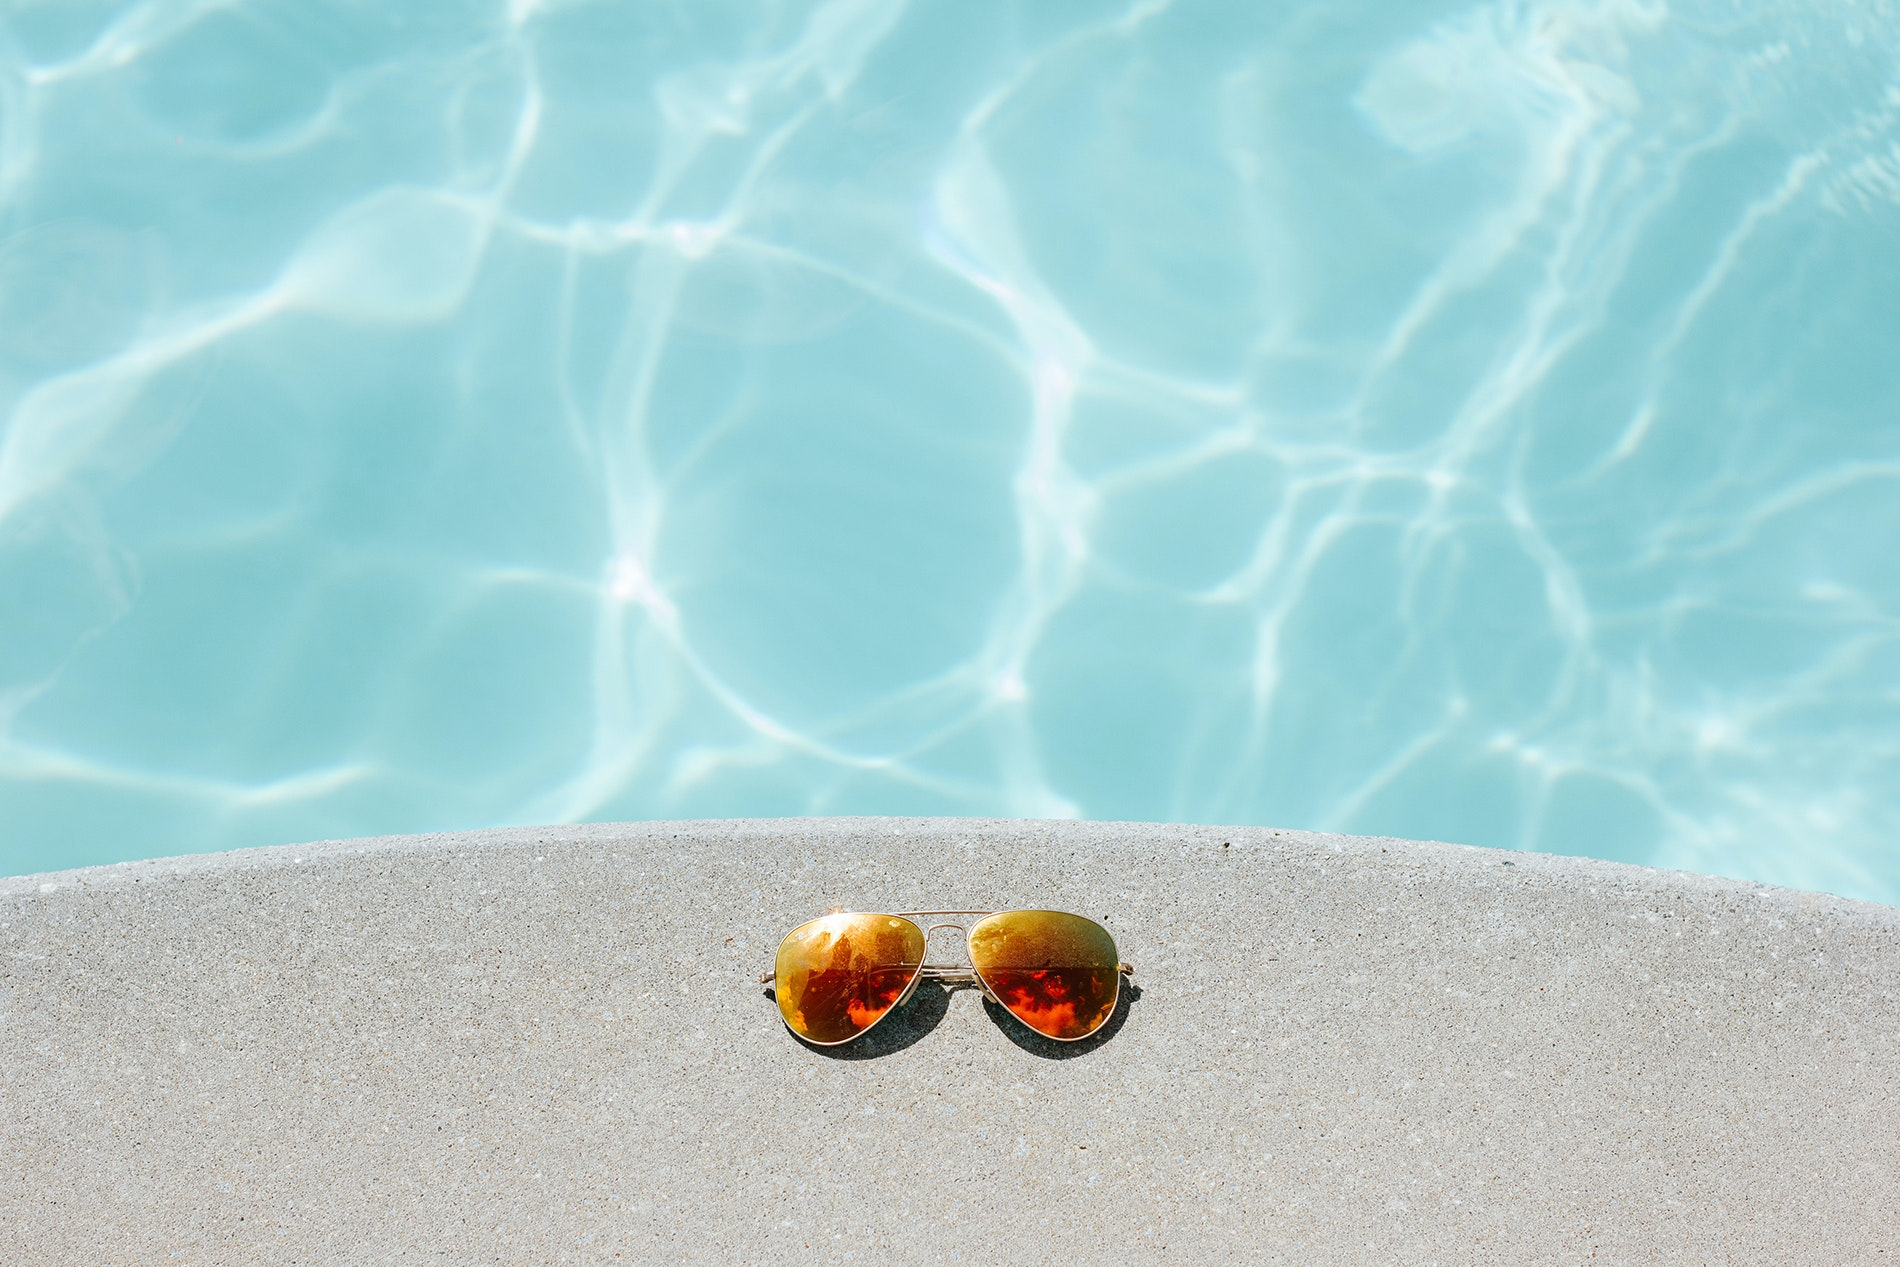 Pack a pair of polarized sunglasses to cut back on glare.